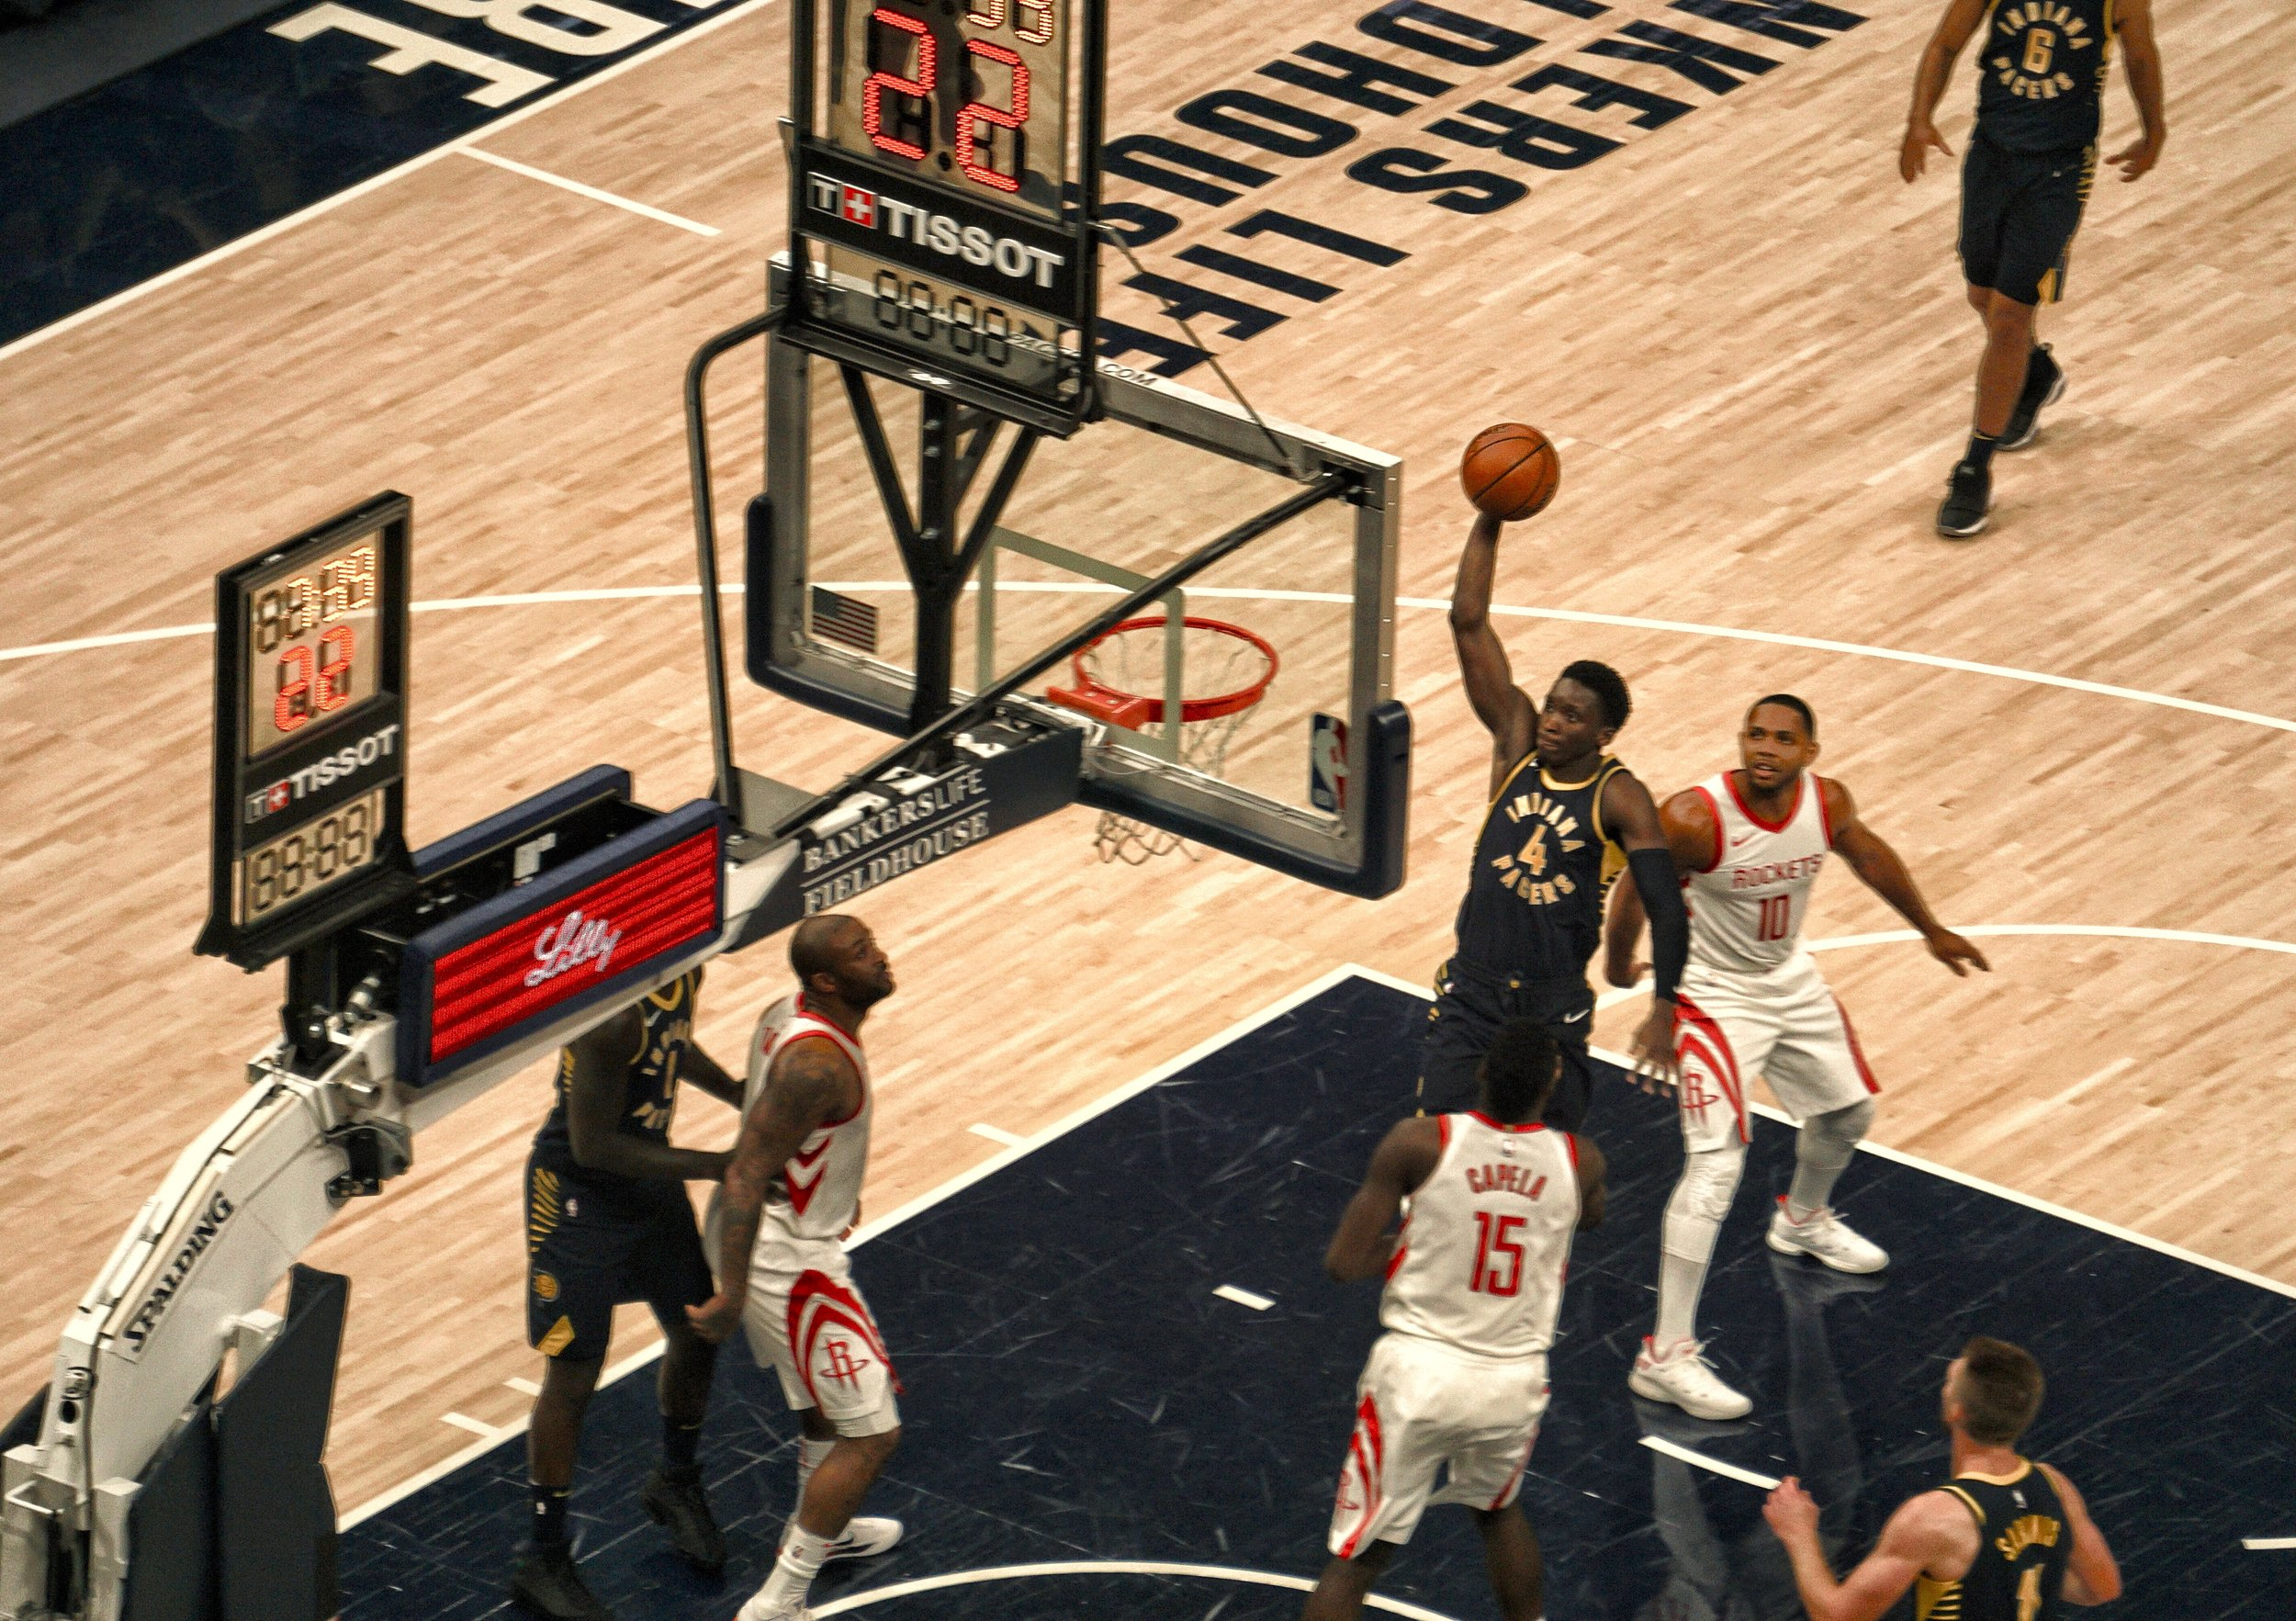 Oladipo soars in for a dunk during the second half of the game.